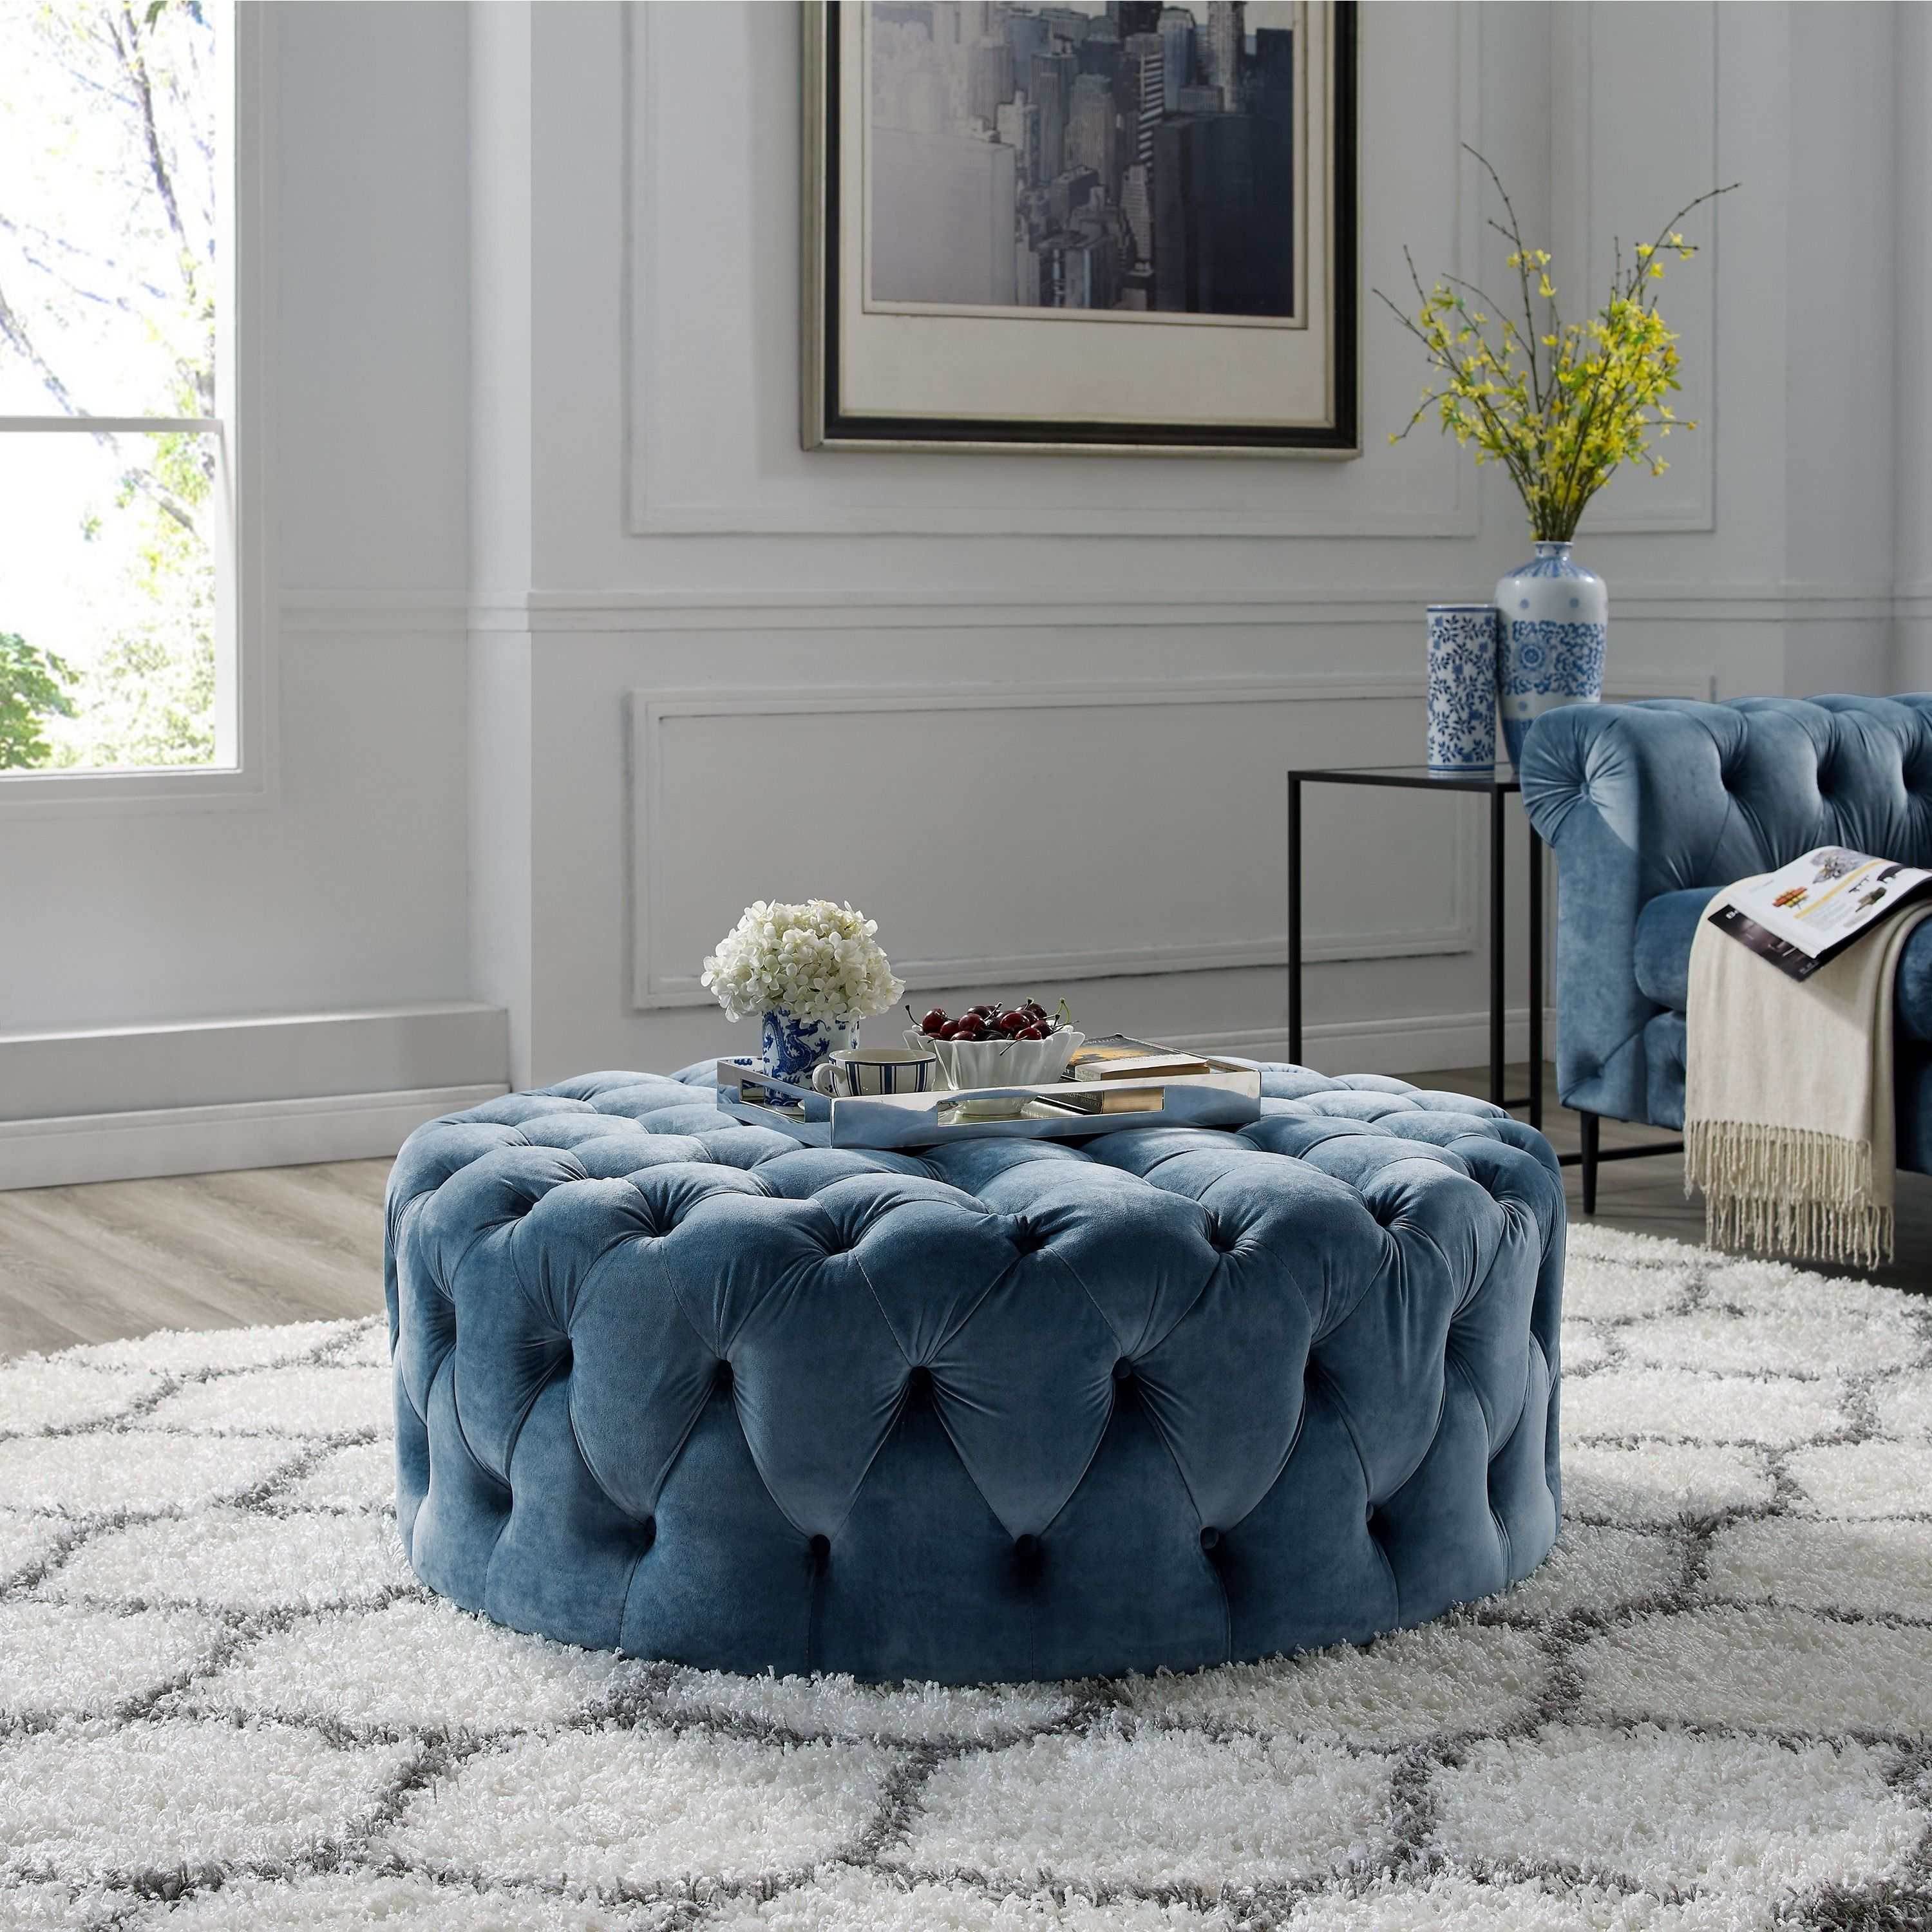 Our best living room furniture deals corvus padova round tufted velvet ottoman with casters french blue size large foam